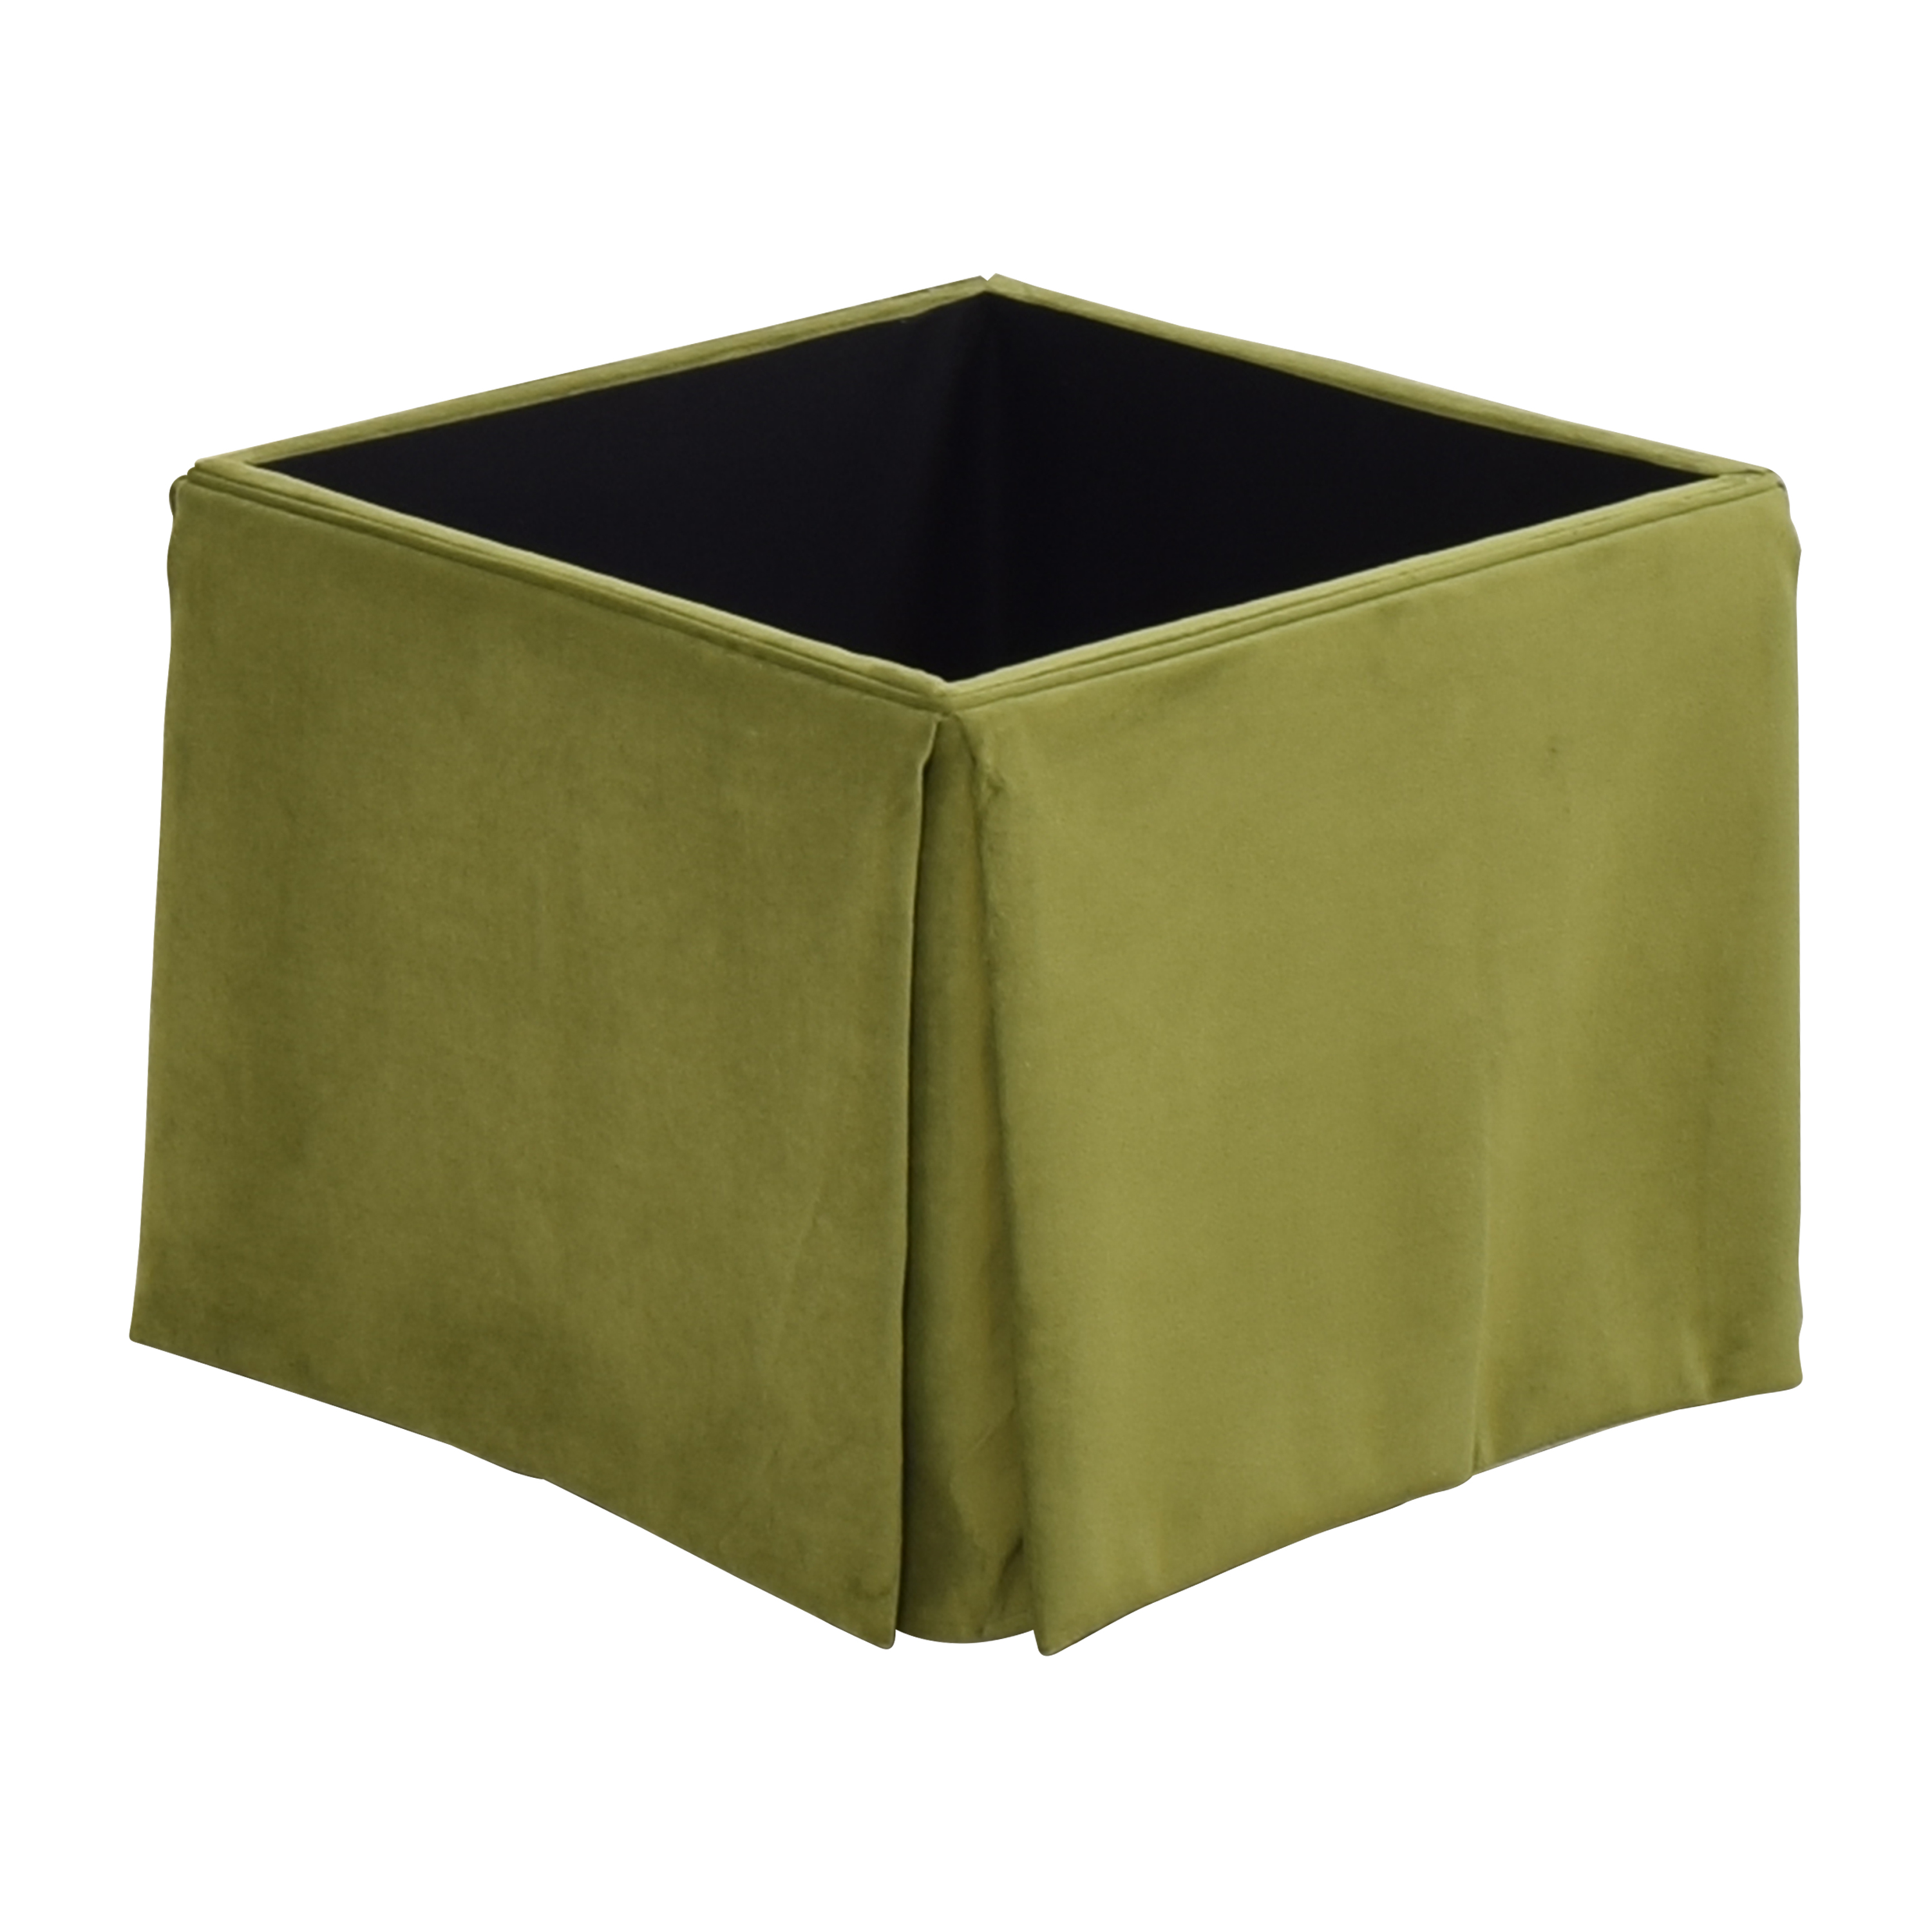 The Inside The Inside Skirted Storage Ottoman second hand